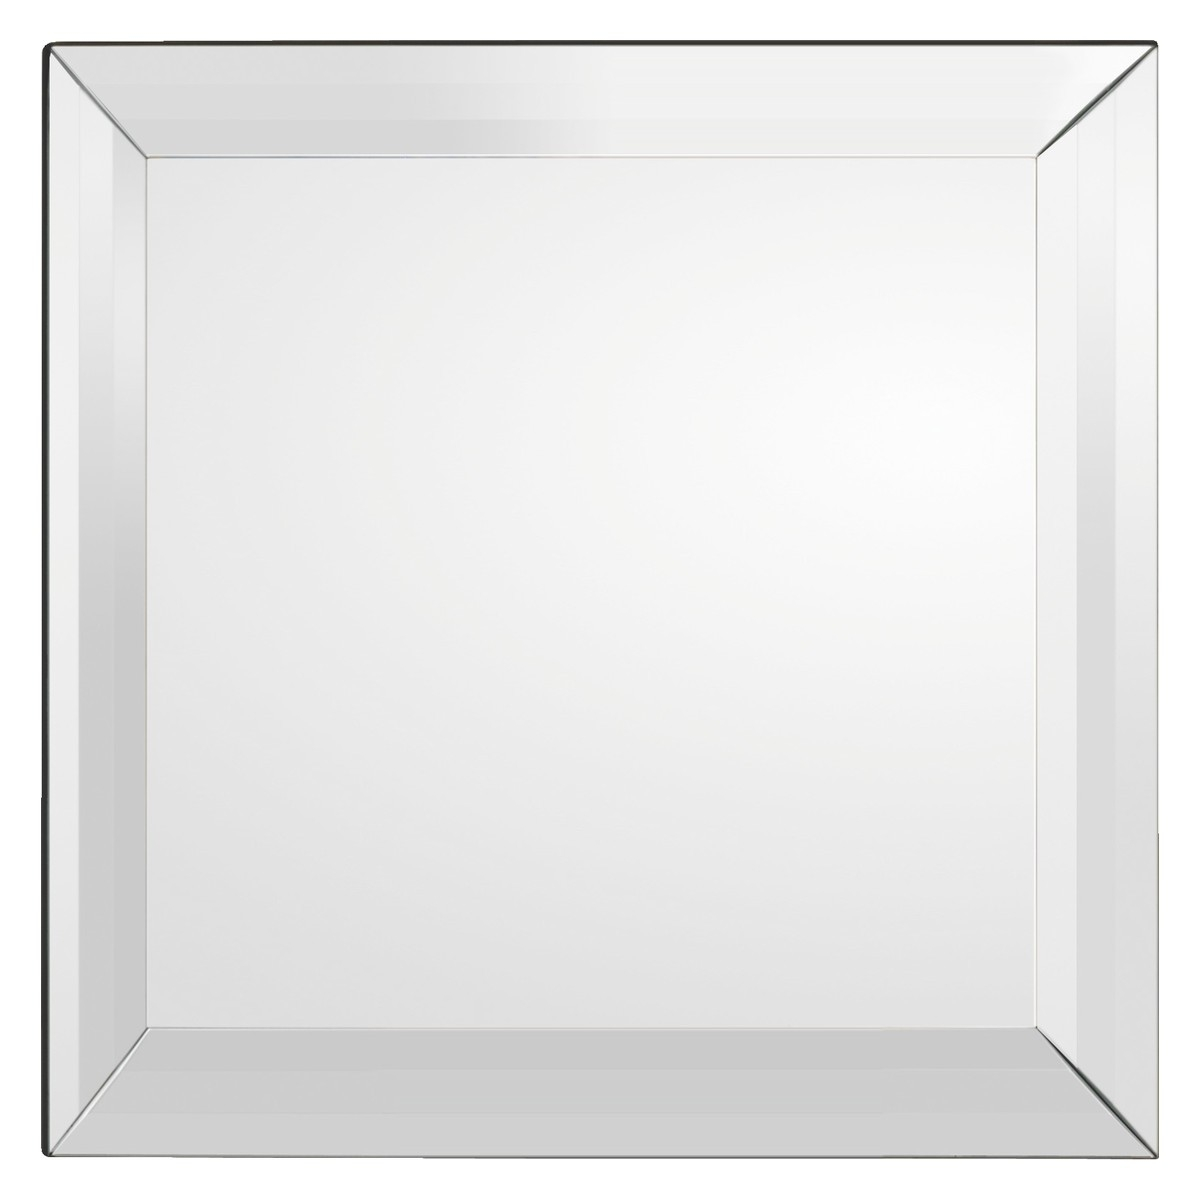 Luella 90 X 90cm Silver Square Wall Mirror Buy Now At Habitat Uk Pertaining To Square Wall Mirror (Image 12 of 15)